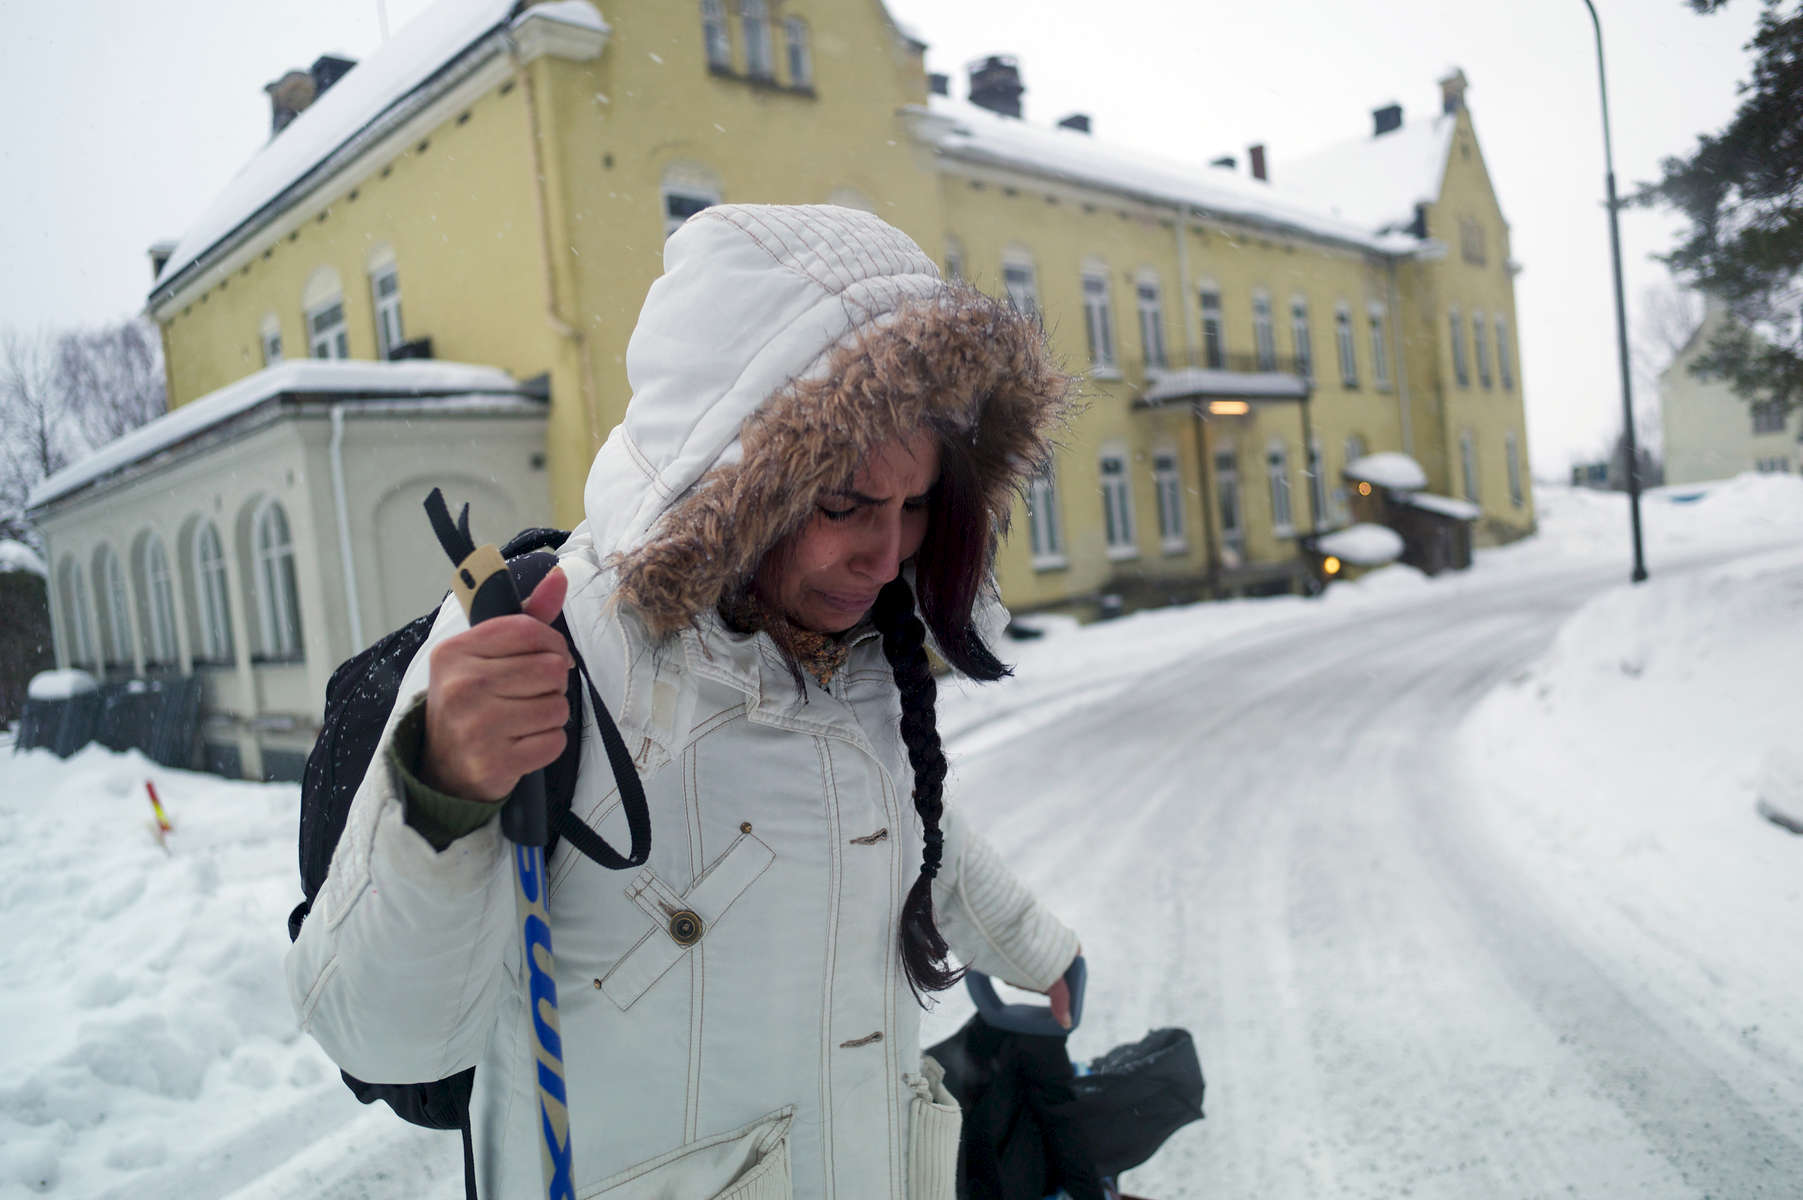 A rejected asylum seeker crys while pulling her luggage through the snow.